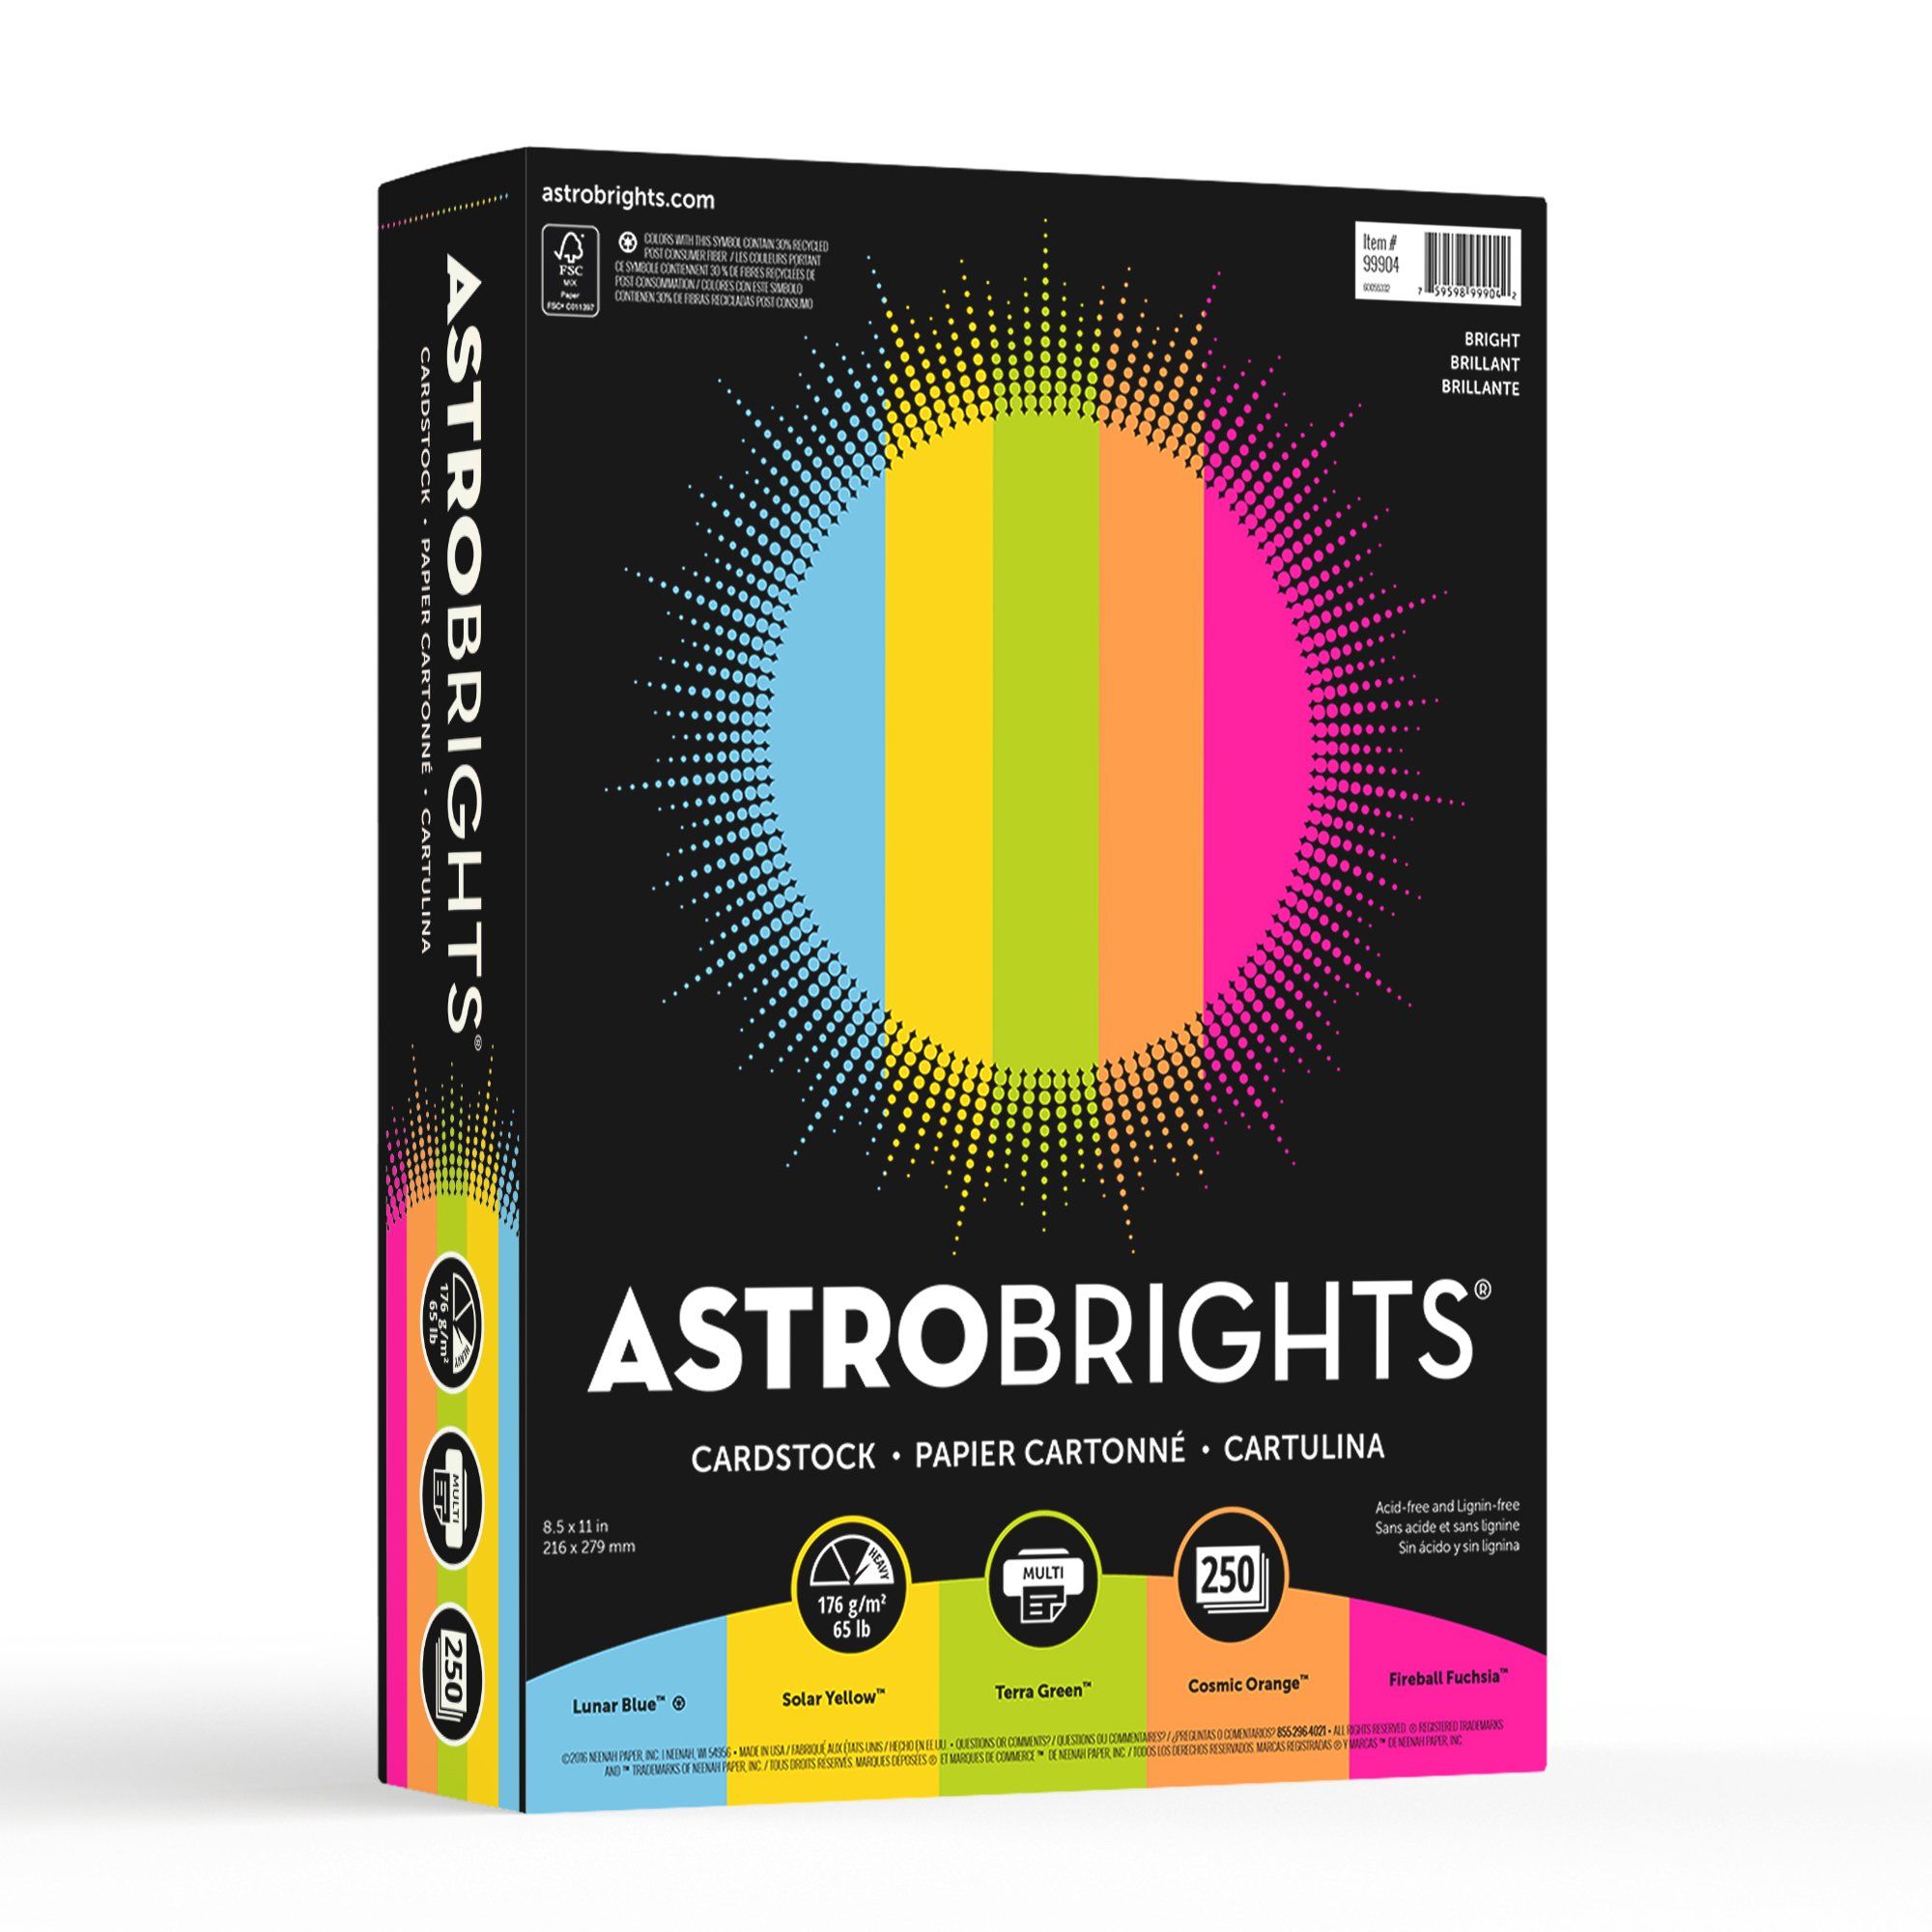 Astrobrights Colored Cardstock, 8.5'' x 11'', 65 lb/176 gsm, ''Bright'' 5-Color Assortment, 250 Sheets (99904) by Astrobrights (Image #2)